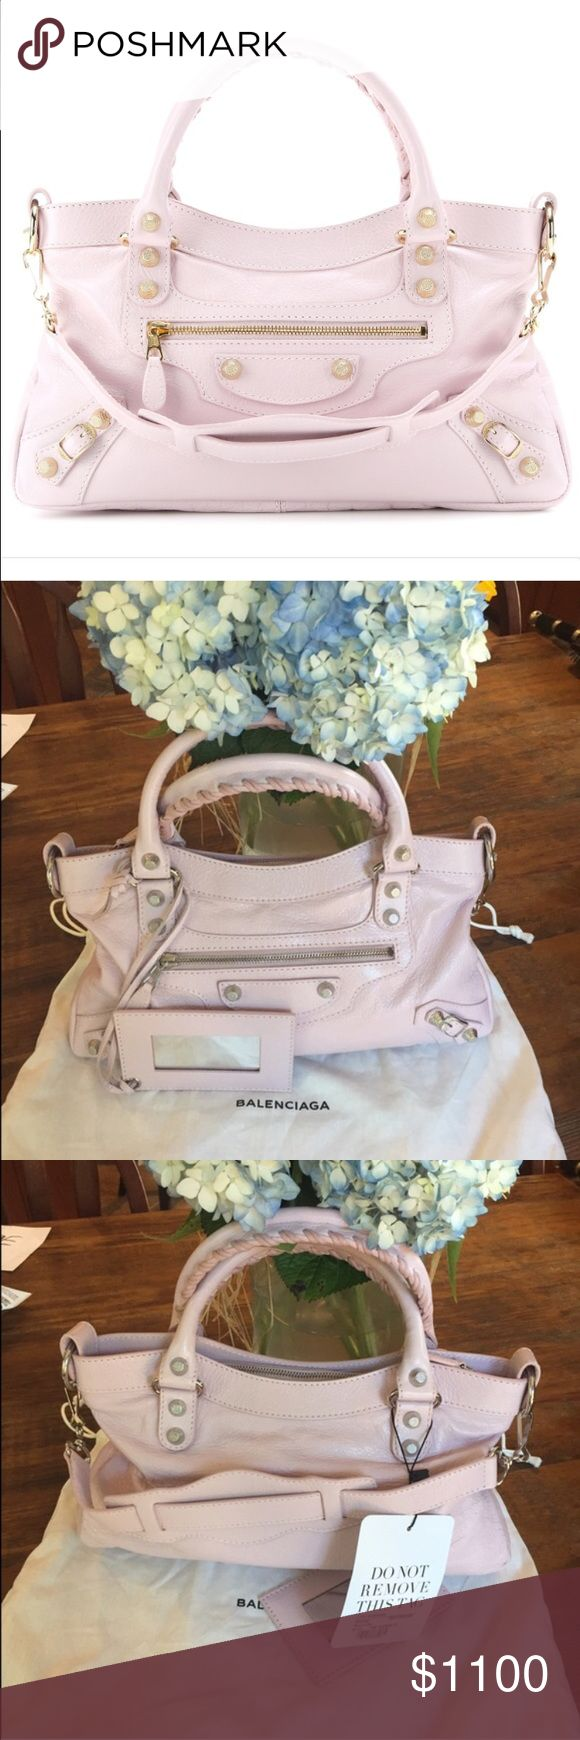 NWT Balenciaga Rose Poudre Giant 12 First Bag Brand New.  Comes with detachable strap, mirror and dust bag.  Silver hardware.  First picture is just a stock photo.  Gorgeous for spring/summer.  Price is negotiable.  ❌trades ✅posh only Balenciaga Bags